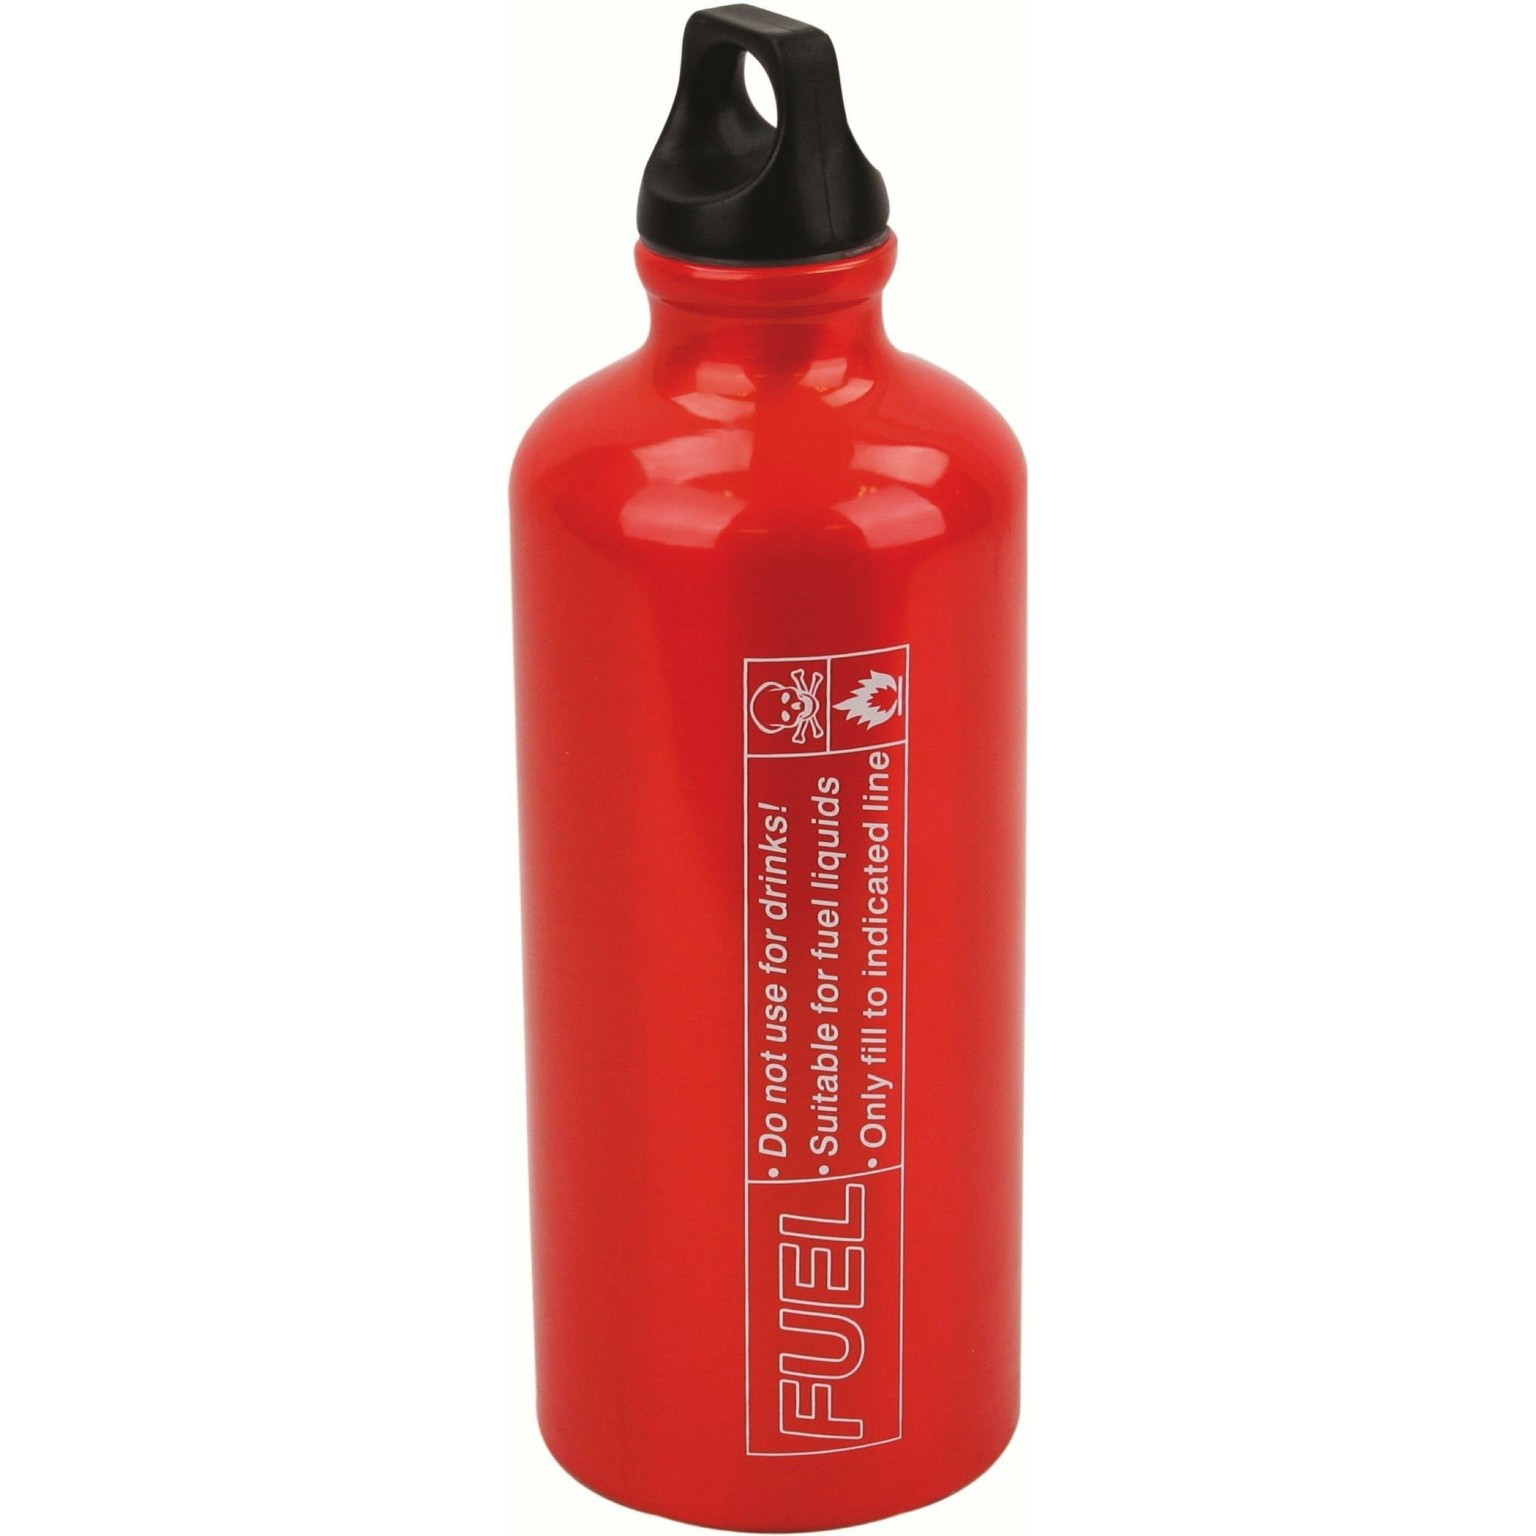 Highlander aluminium fuel bottle Image